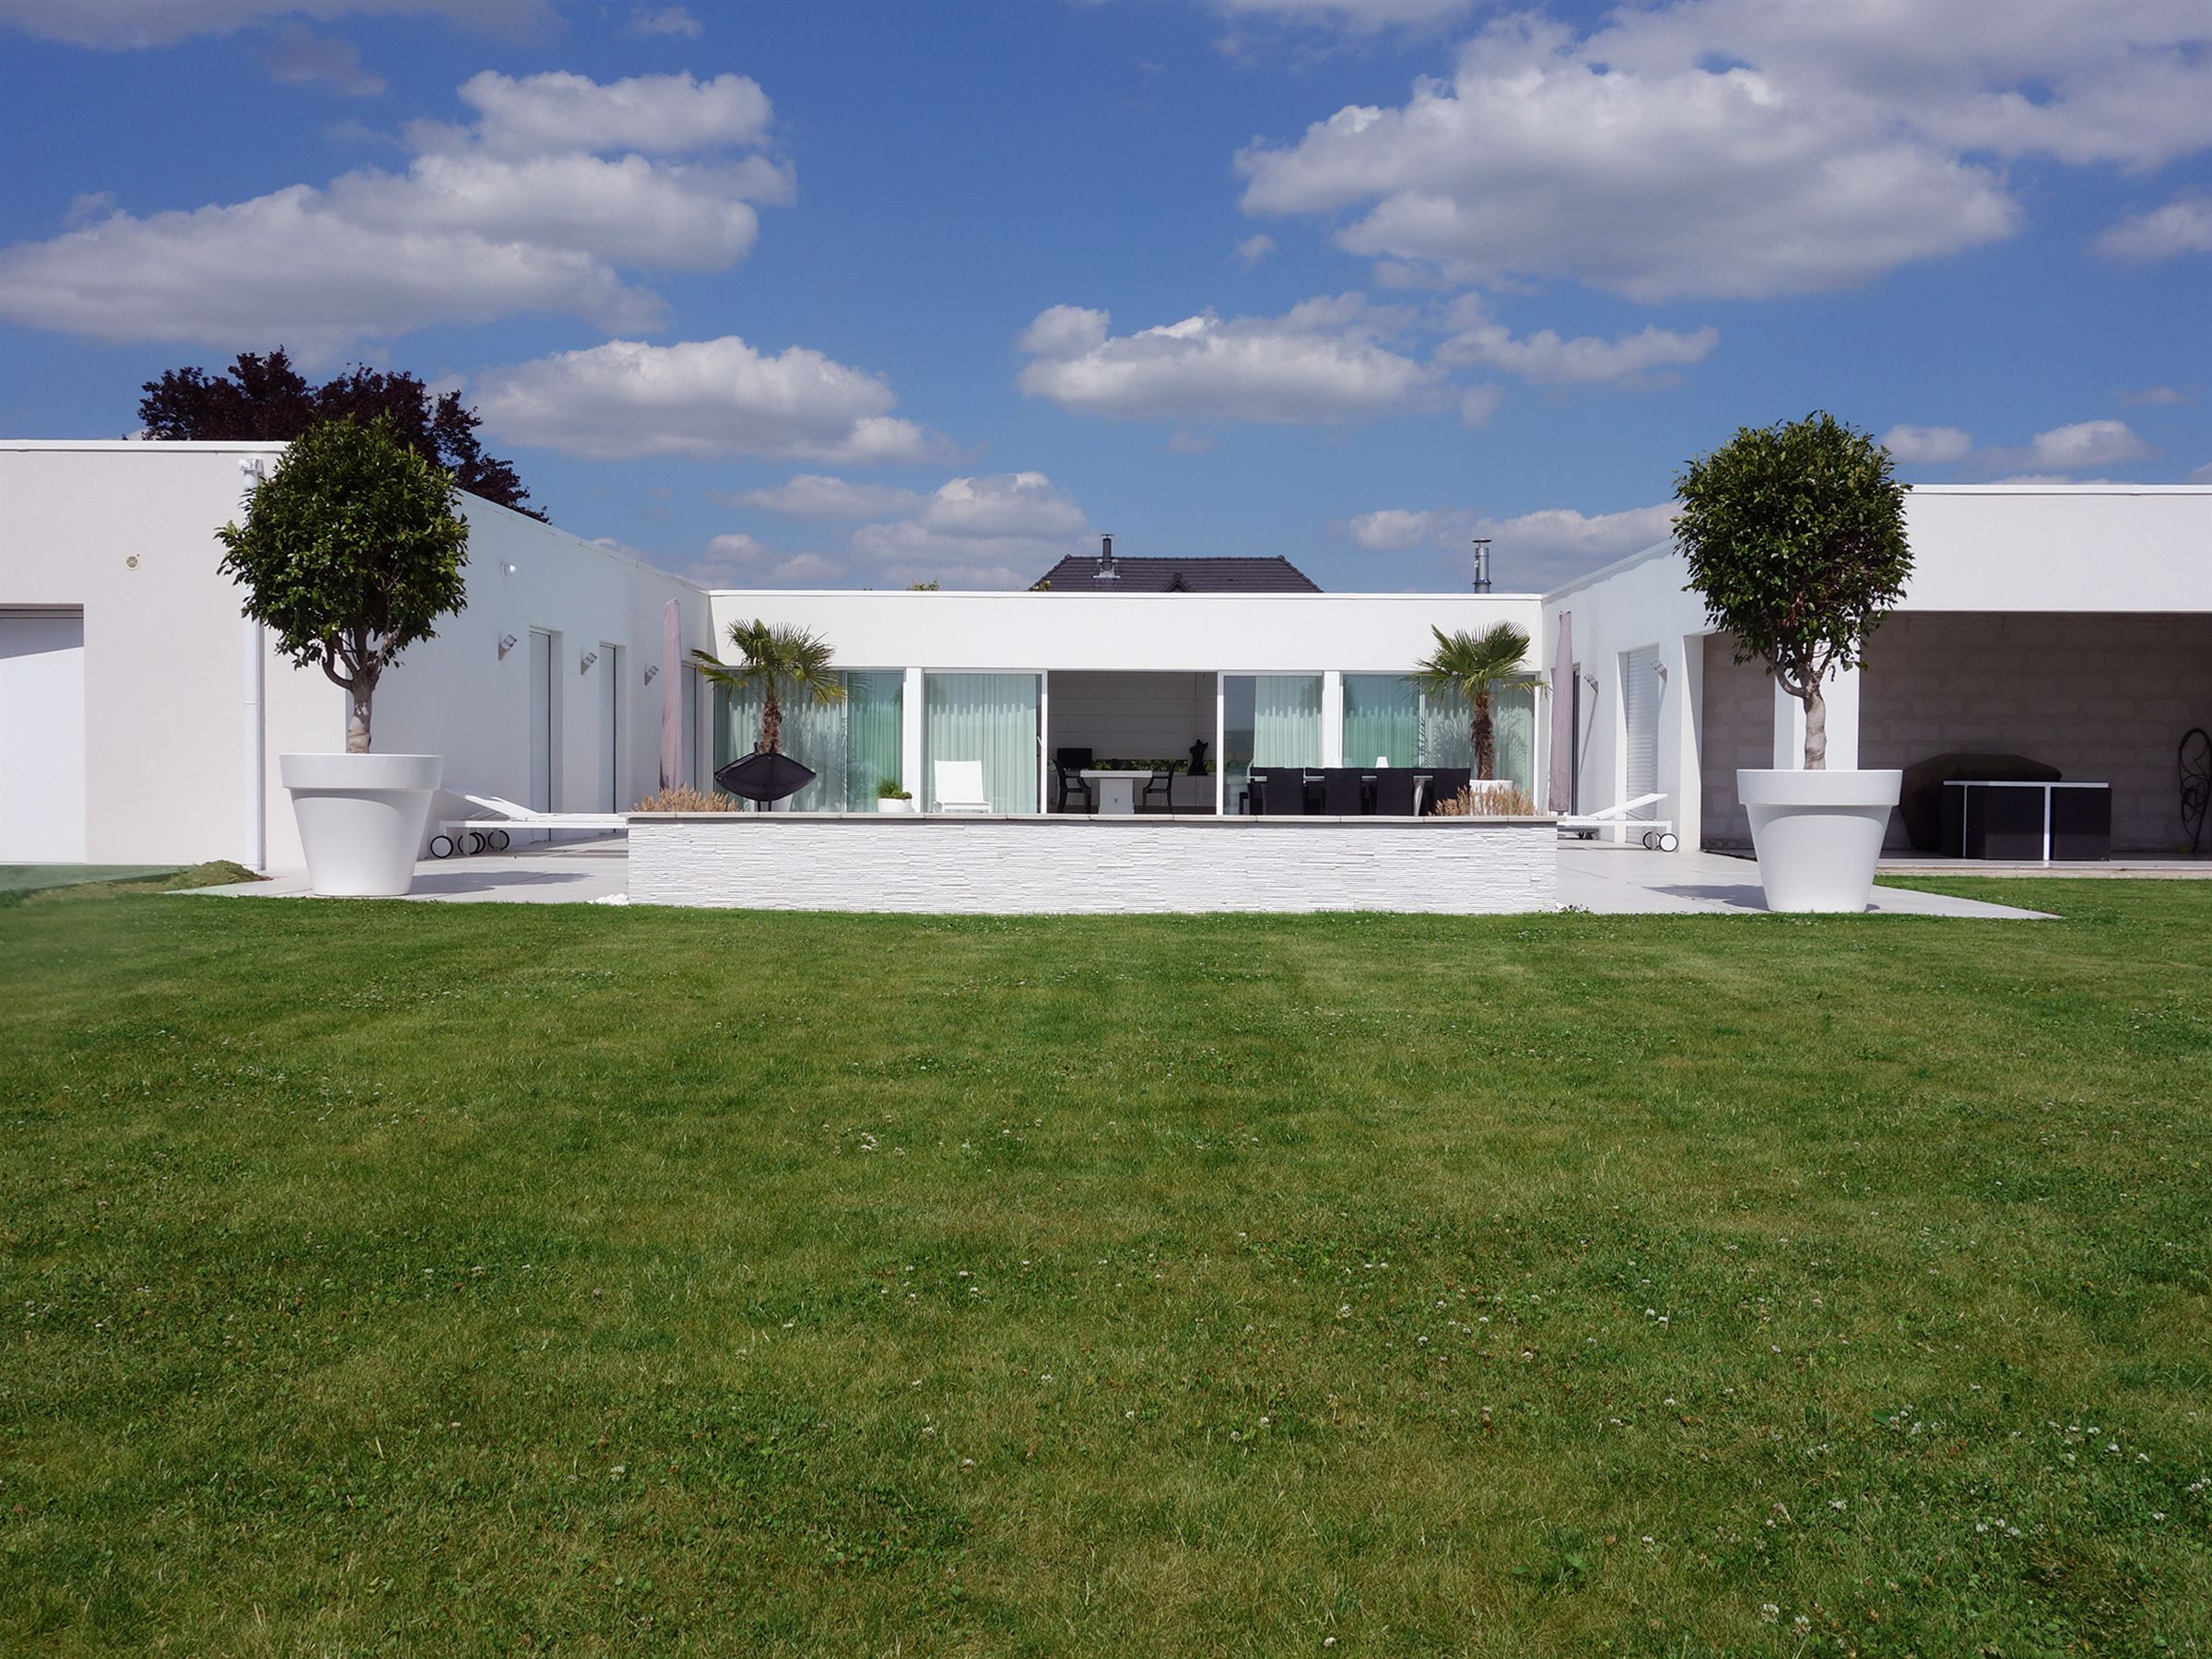 Property For Sale at Mérignies, Luxurious contemporary villa, 224 m2 hab, 3 bedrooms